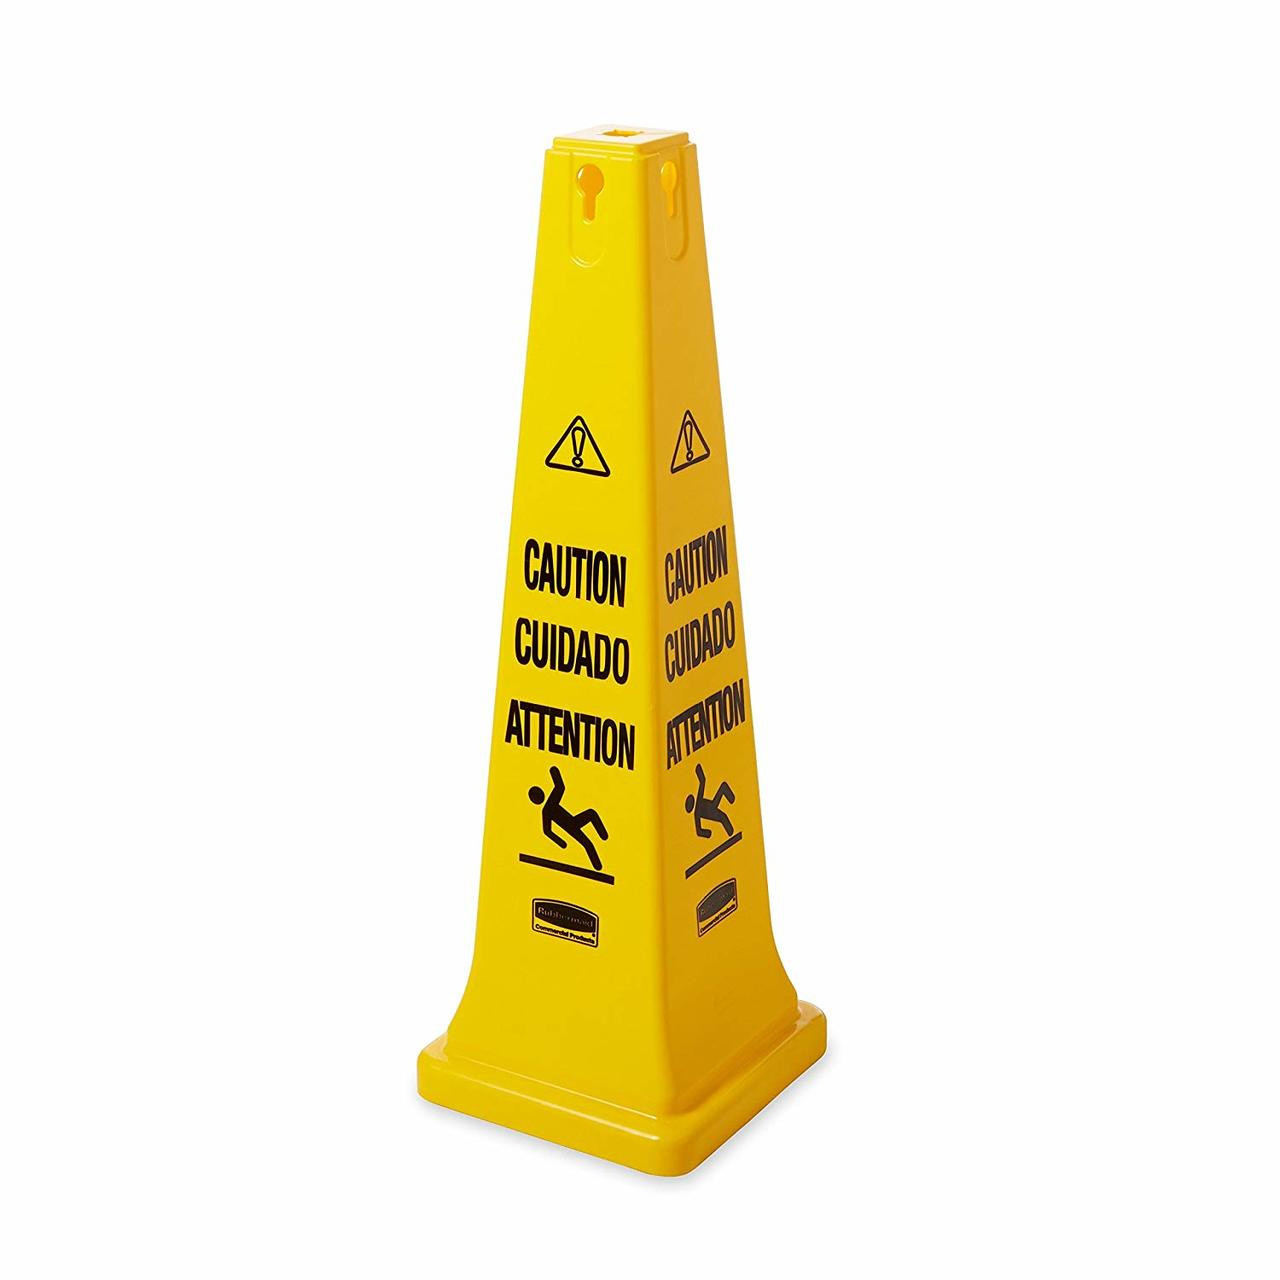 Rubbermaid Safety Cone - Multilingual Caution And Wet Floor Symbol - 91cm